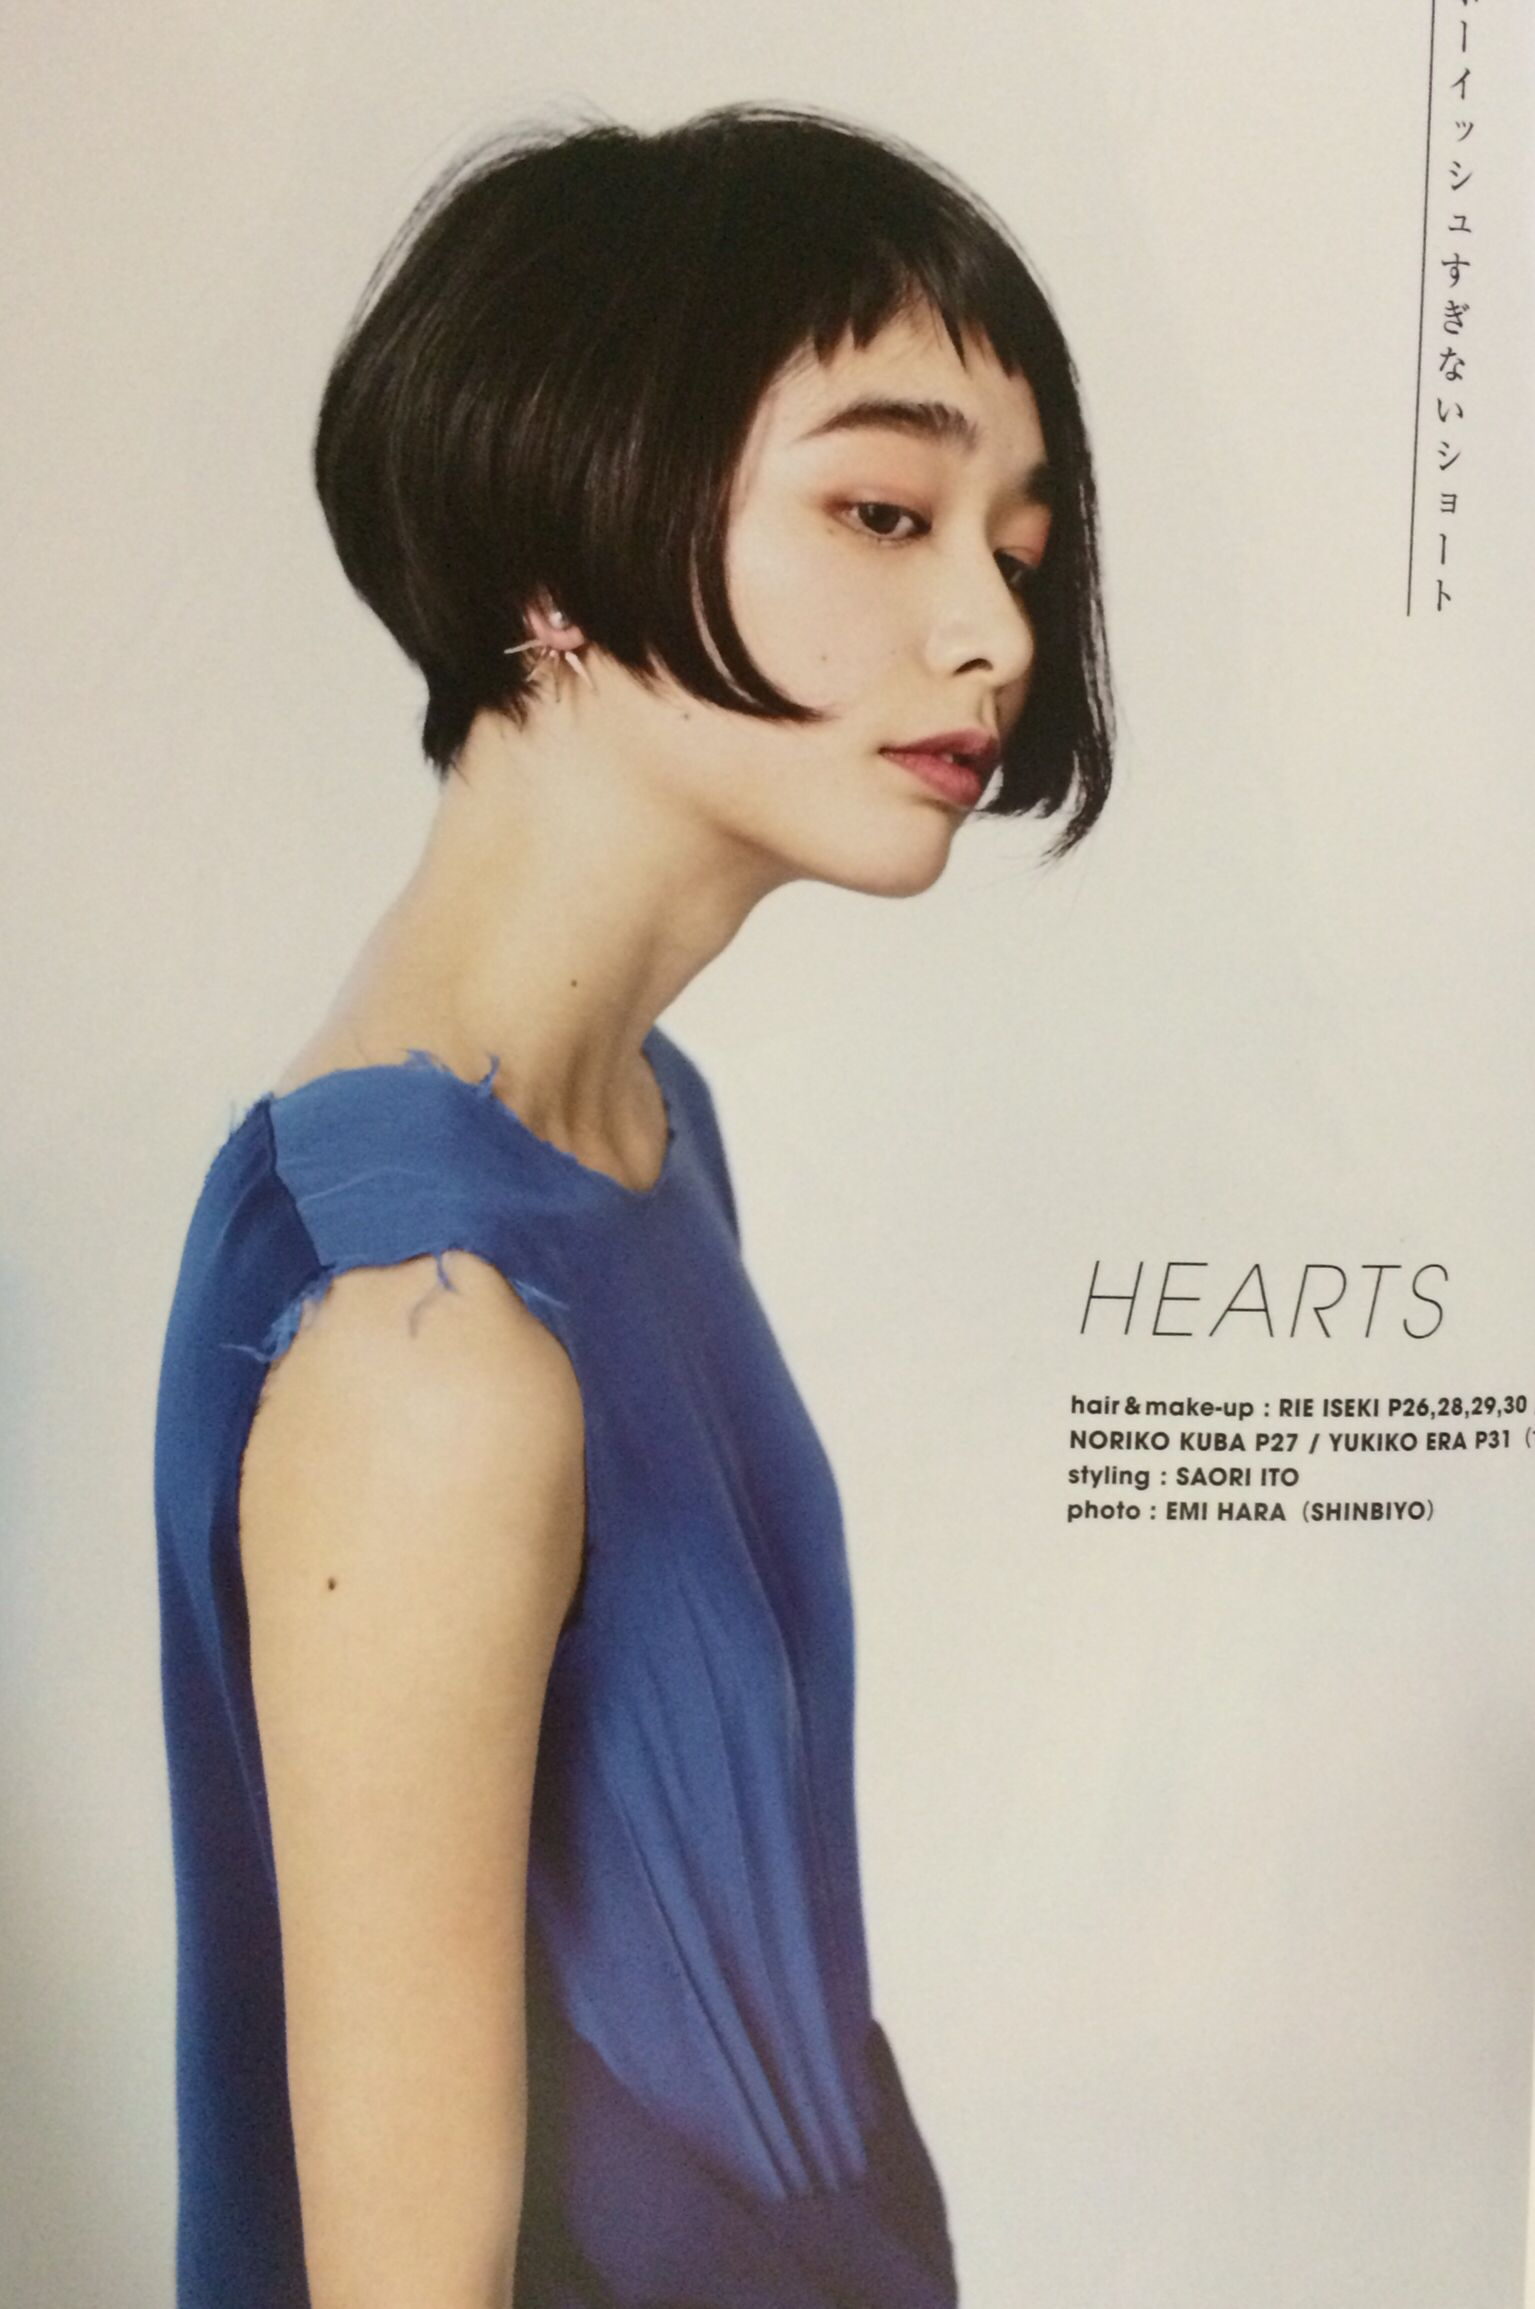 Pin By 倉光 智子 On スタイル Pinterest Short Hair Bobs And Hair